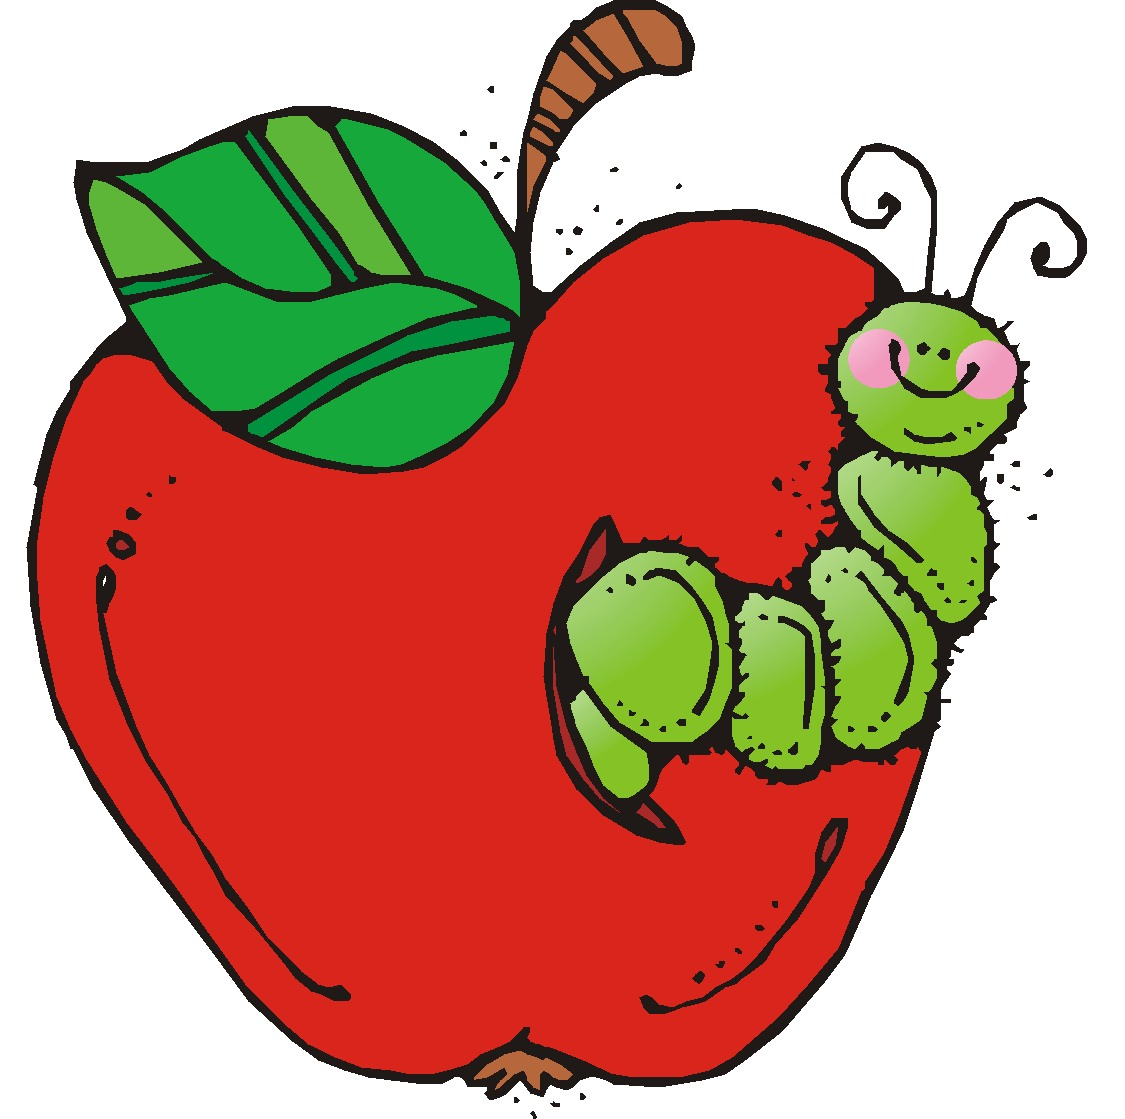 Free School Apple Clipart, Download Free Clip Art, Free Clip